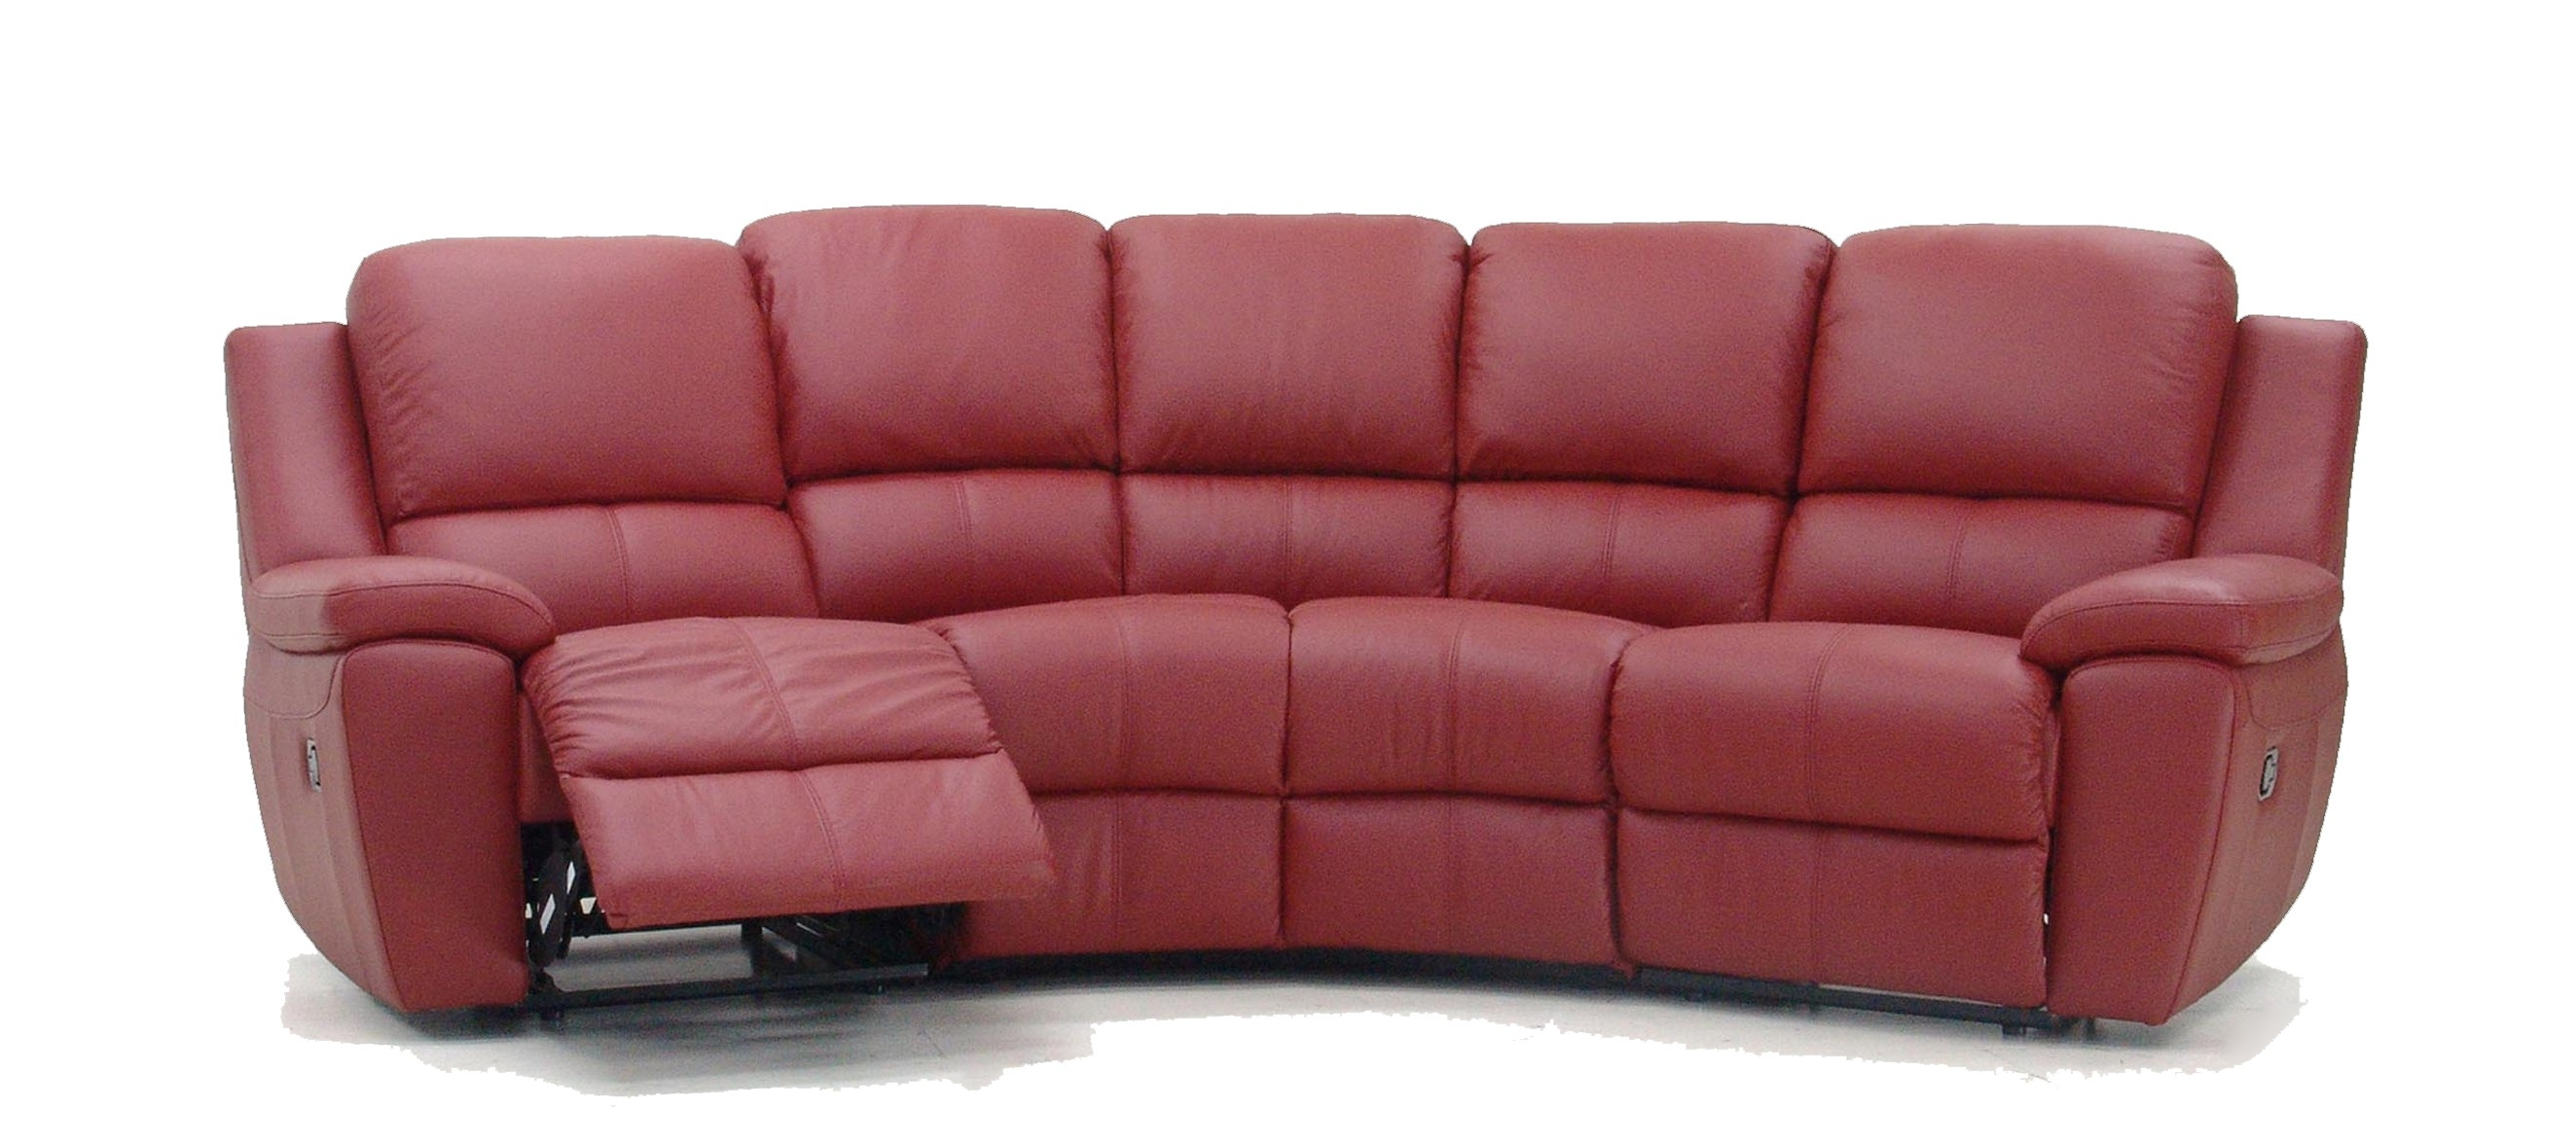 Rome Curved Corner Recliner Sofa In Curved Recliner Sofa (#7 of 12)